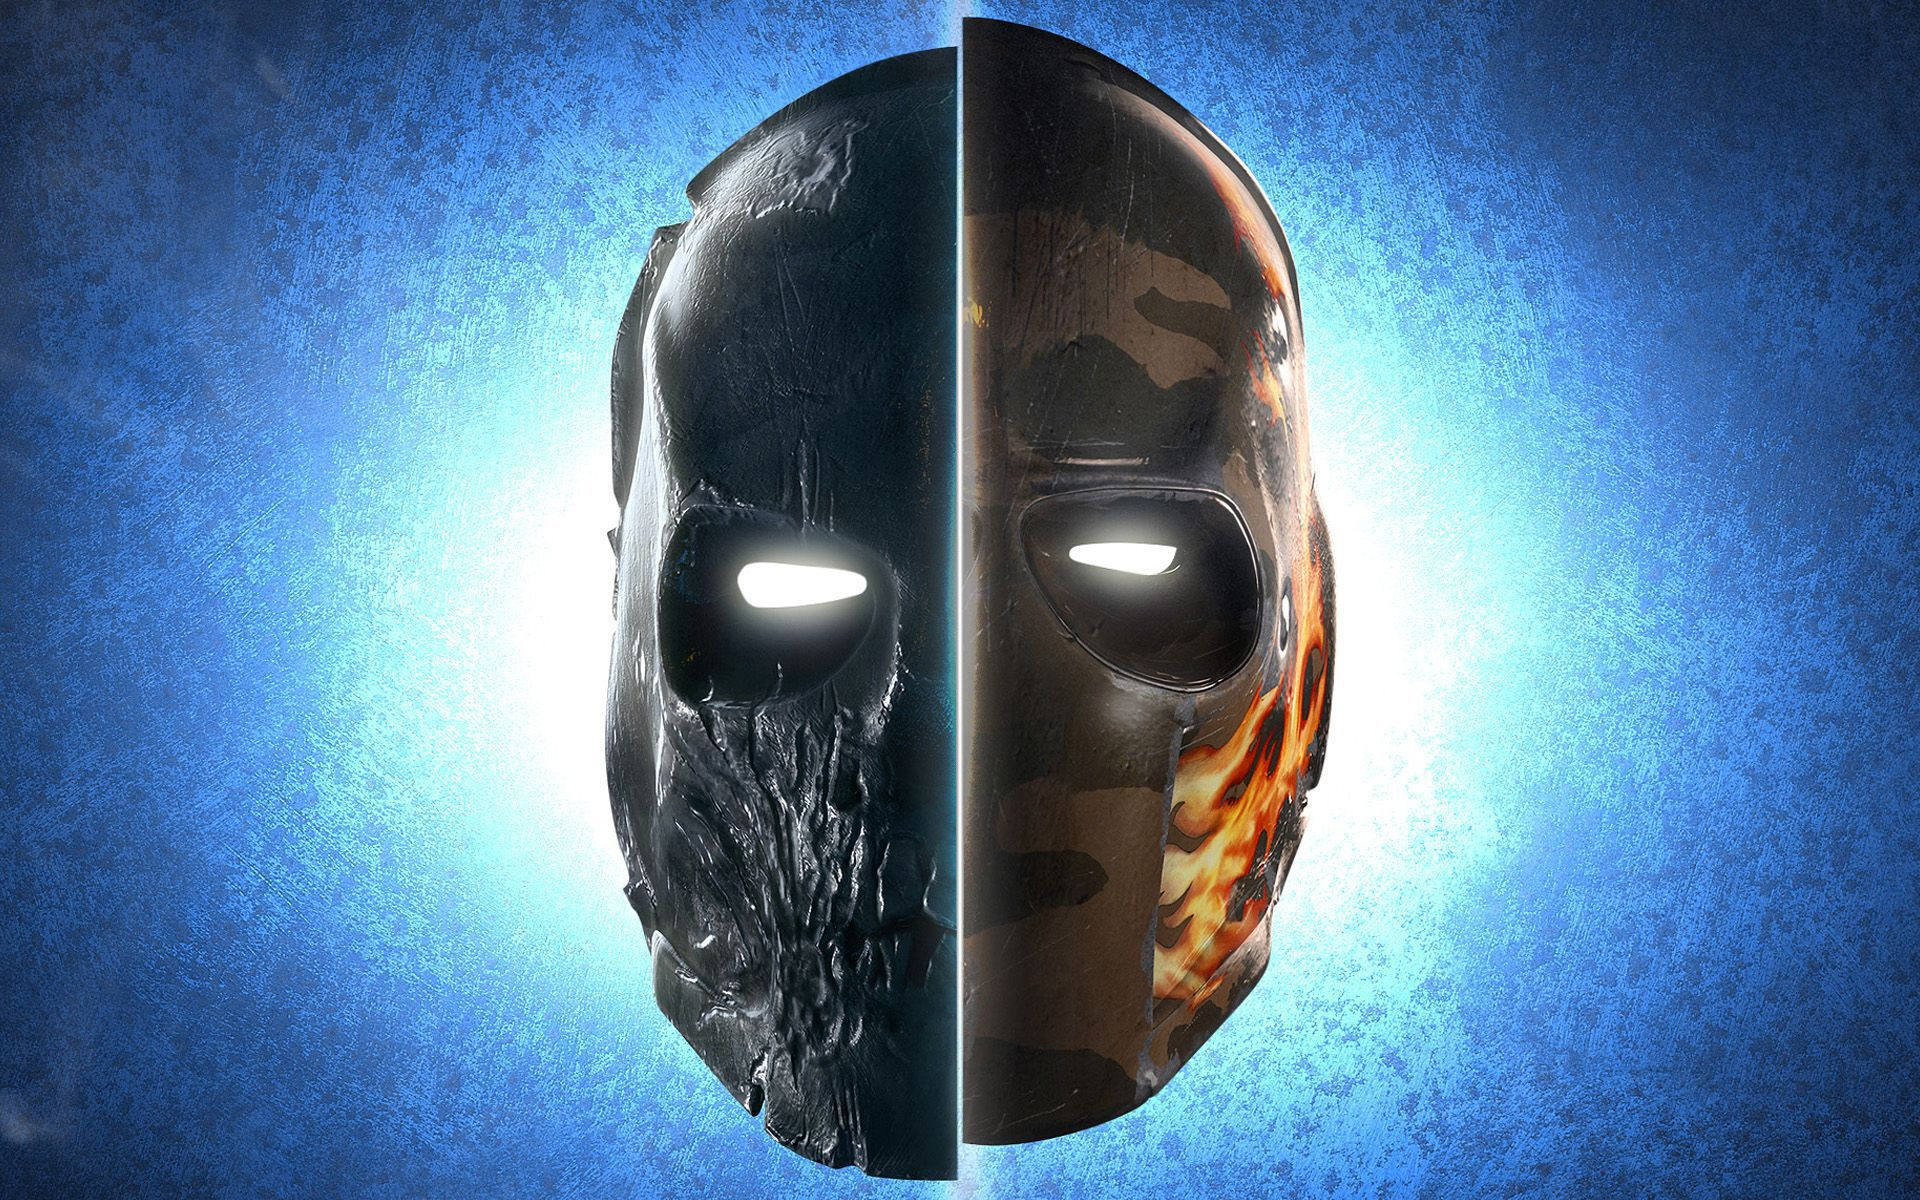 Army Of Two Wallpaper Pack